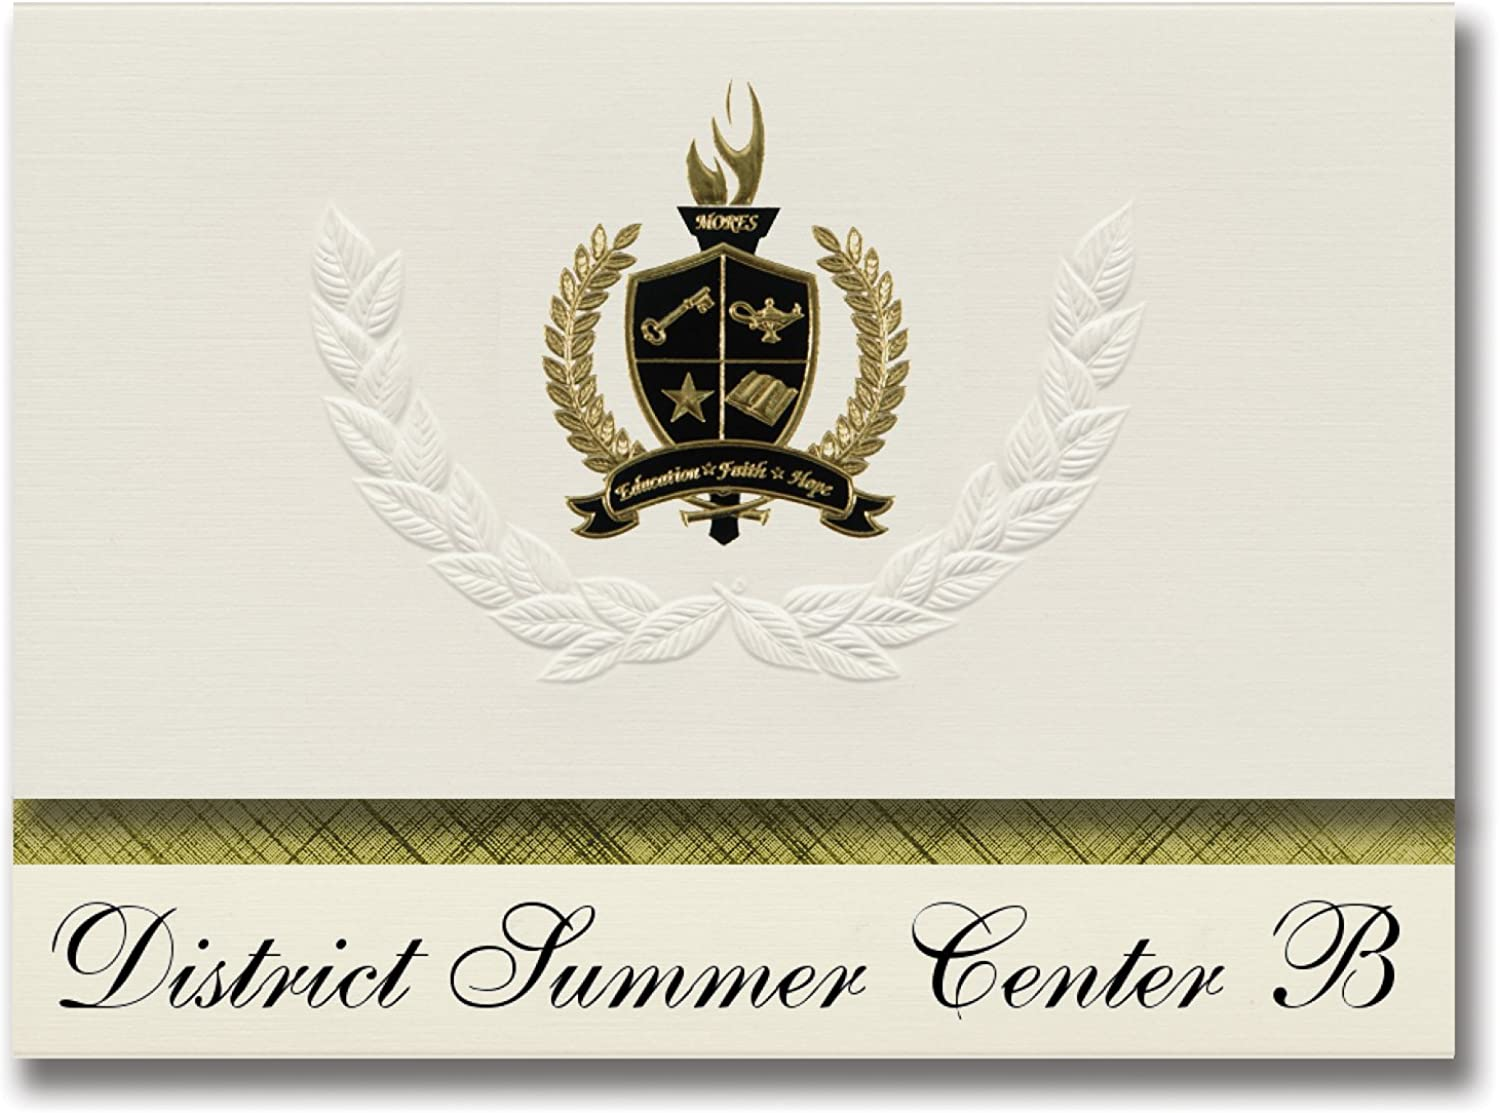 Signature Ankündigungen District Sommer Center B (Miami, Fl) Graduation Ankündigungen, Presidential Stil, Elite Paket 25 Stück mit Gold & Schwarz Metallic Folie Dichtung B078VCSCLW   | Hohe Qualität und günstig